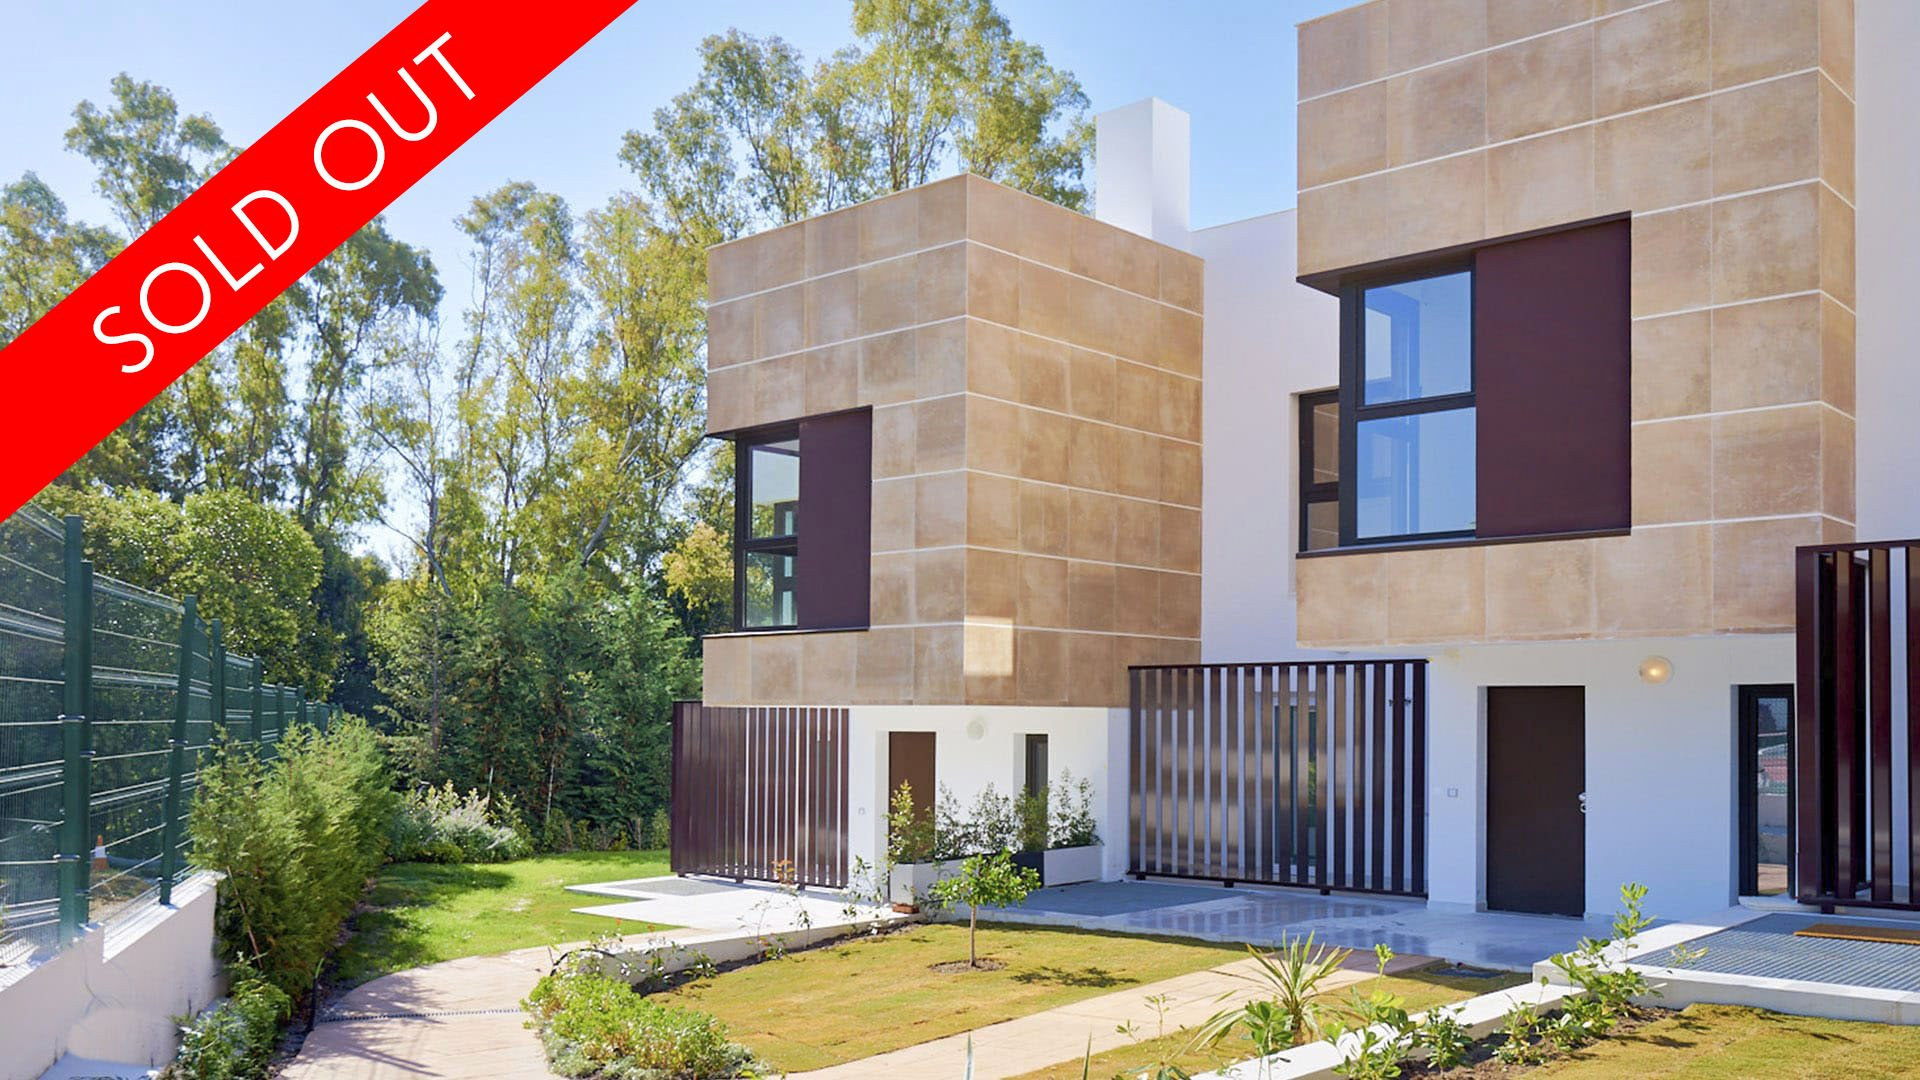 Golden Green: Newly built semi-detached houses in the heart of Nueva Andalucía